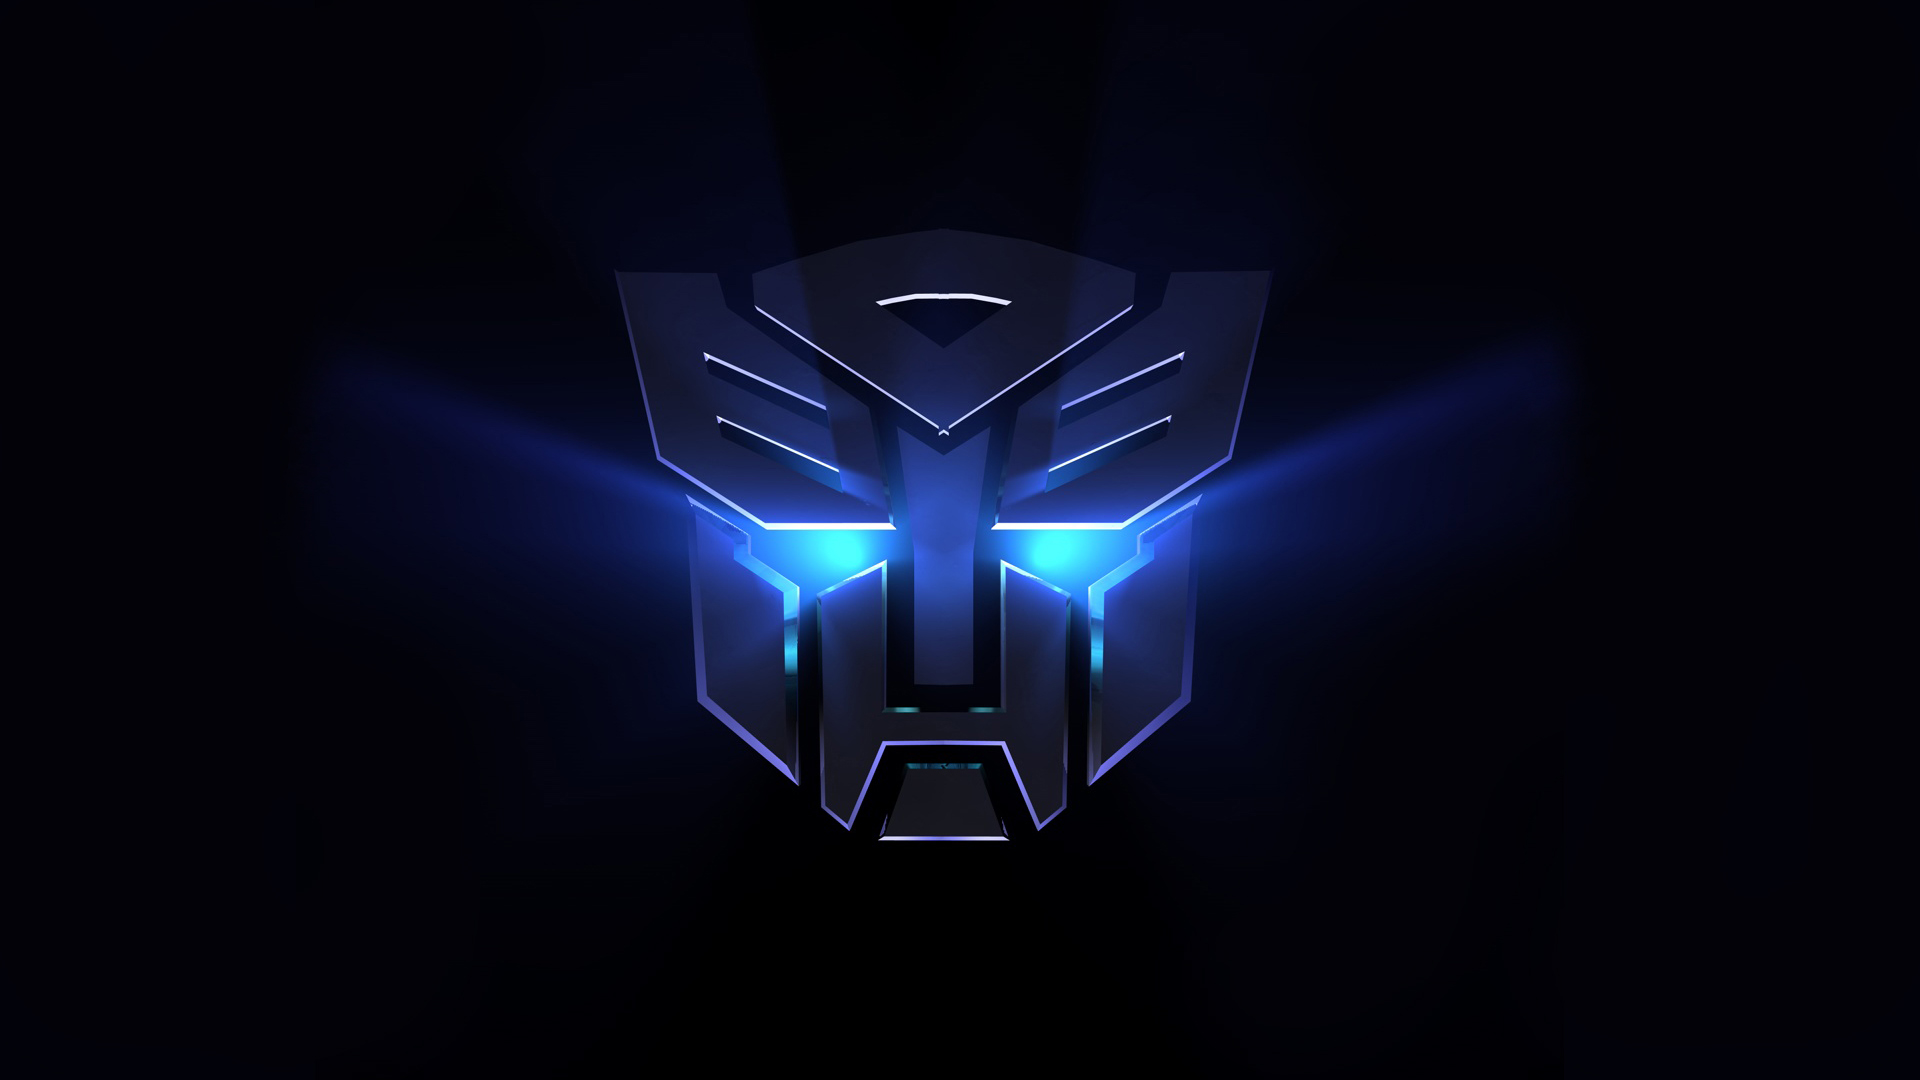 Transformers Wallpaper Hd Widescreen Transformers Full Hd Wallpaper And Background Image